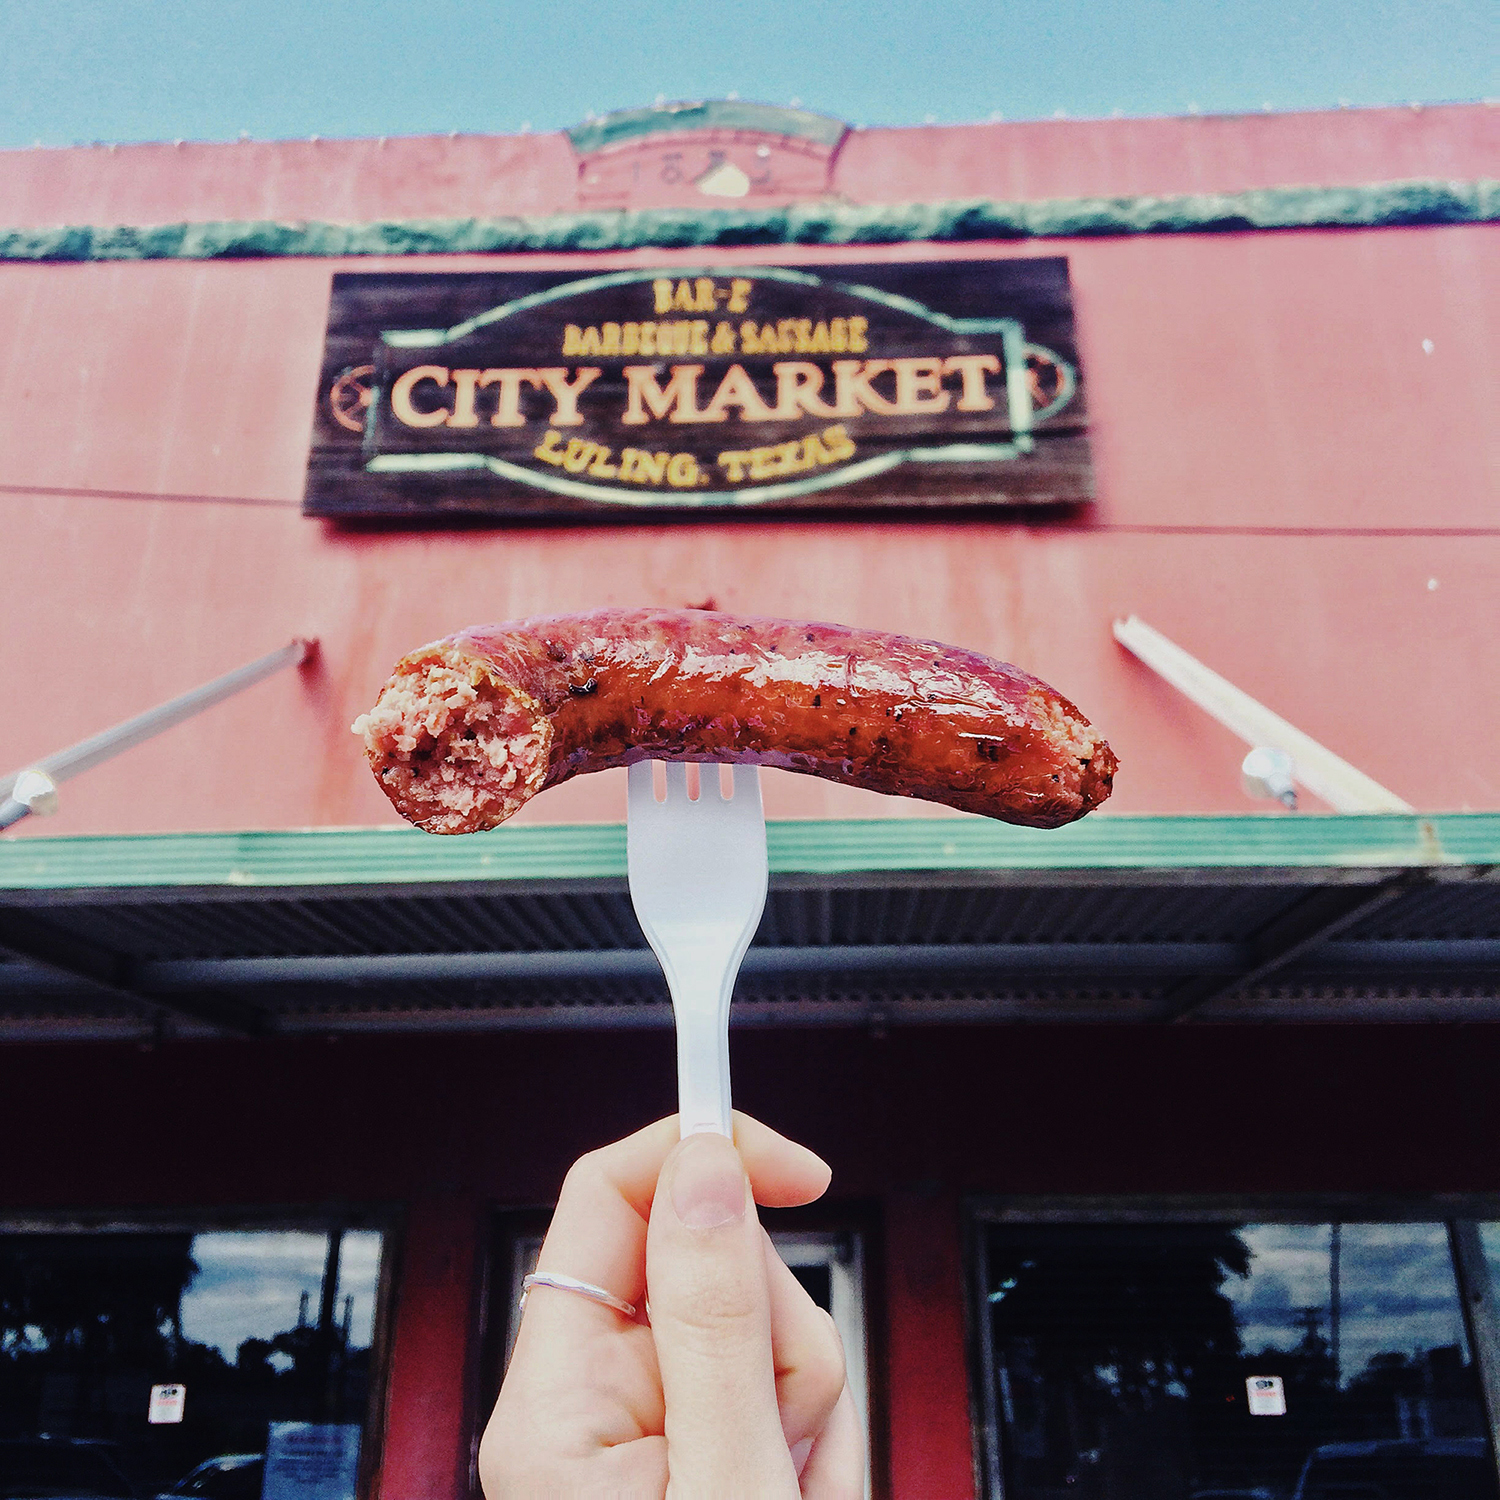 240-road-trip-city-market-barbecue-luling-texas